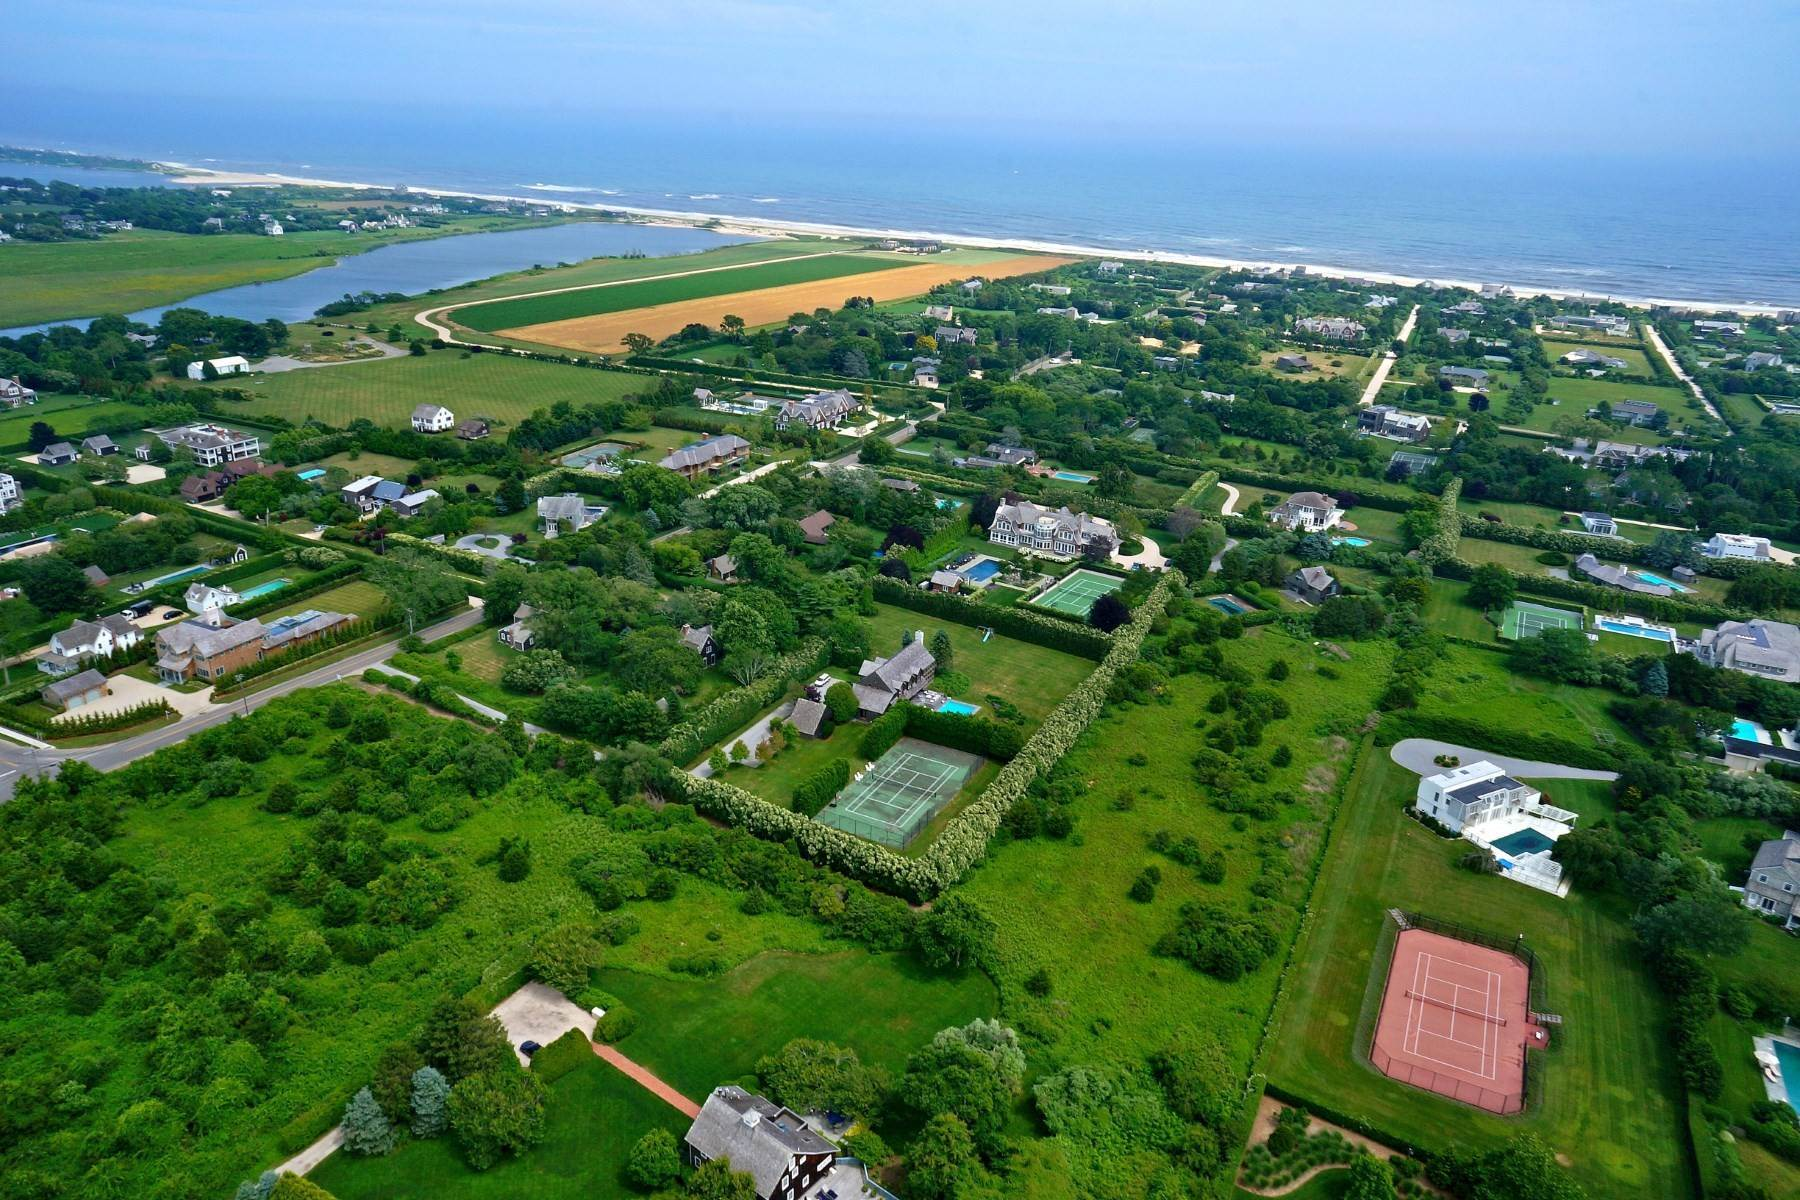 Land for Sale at Sagaponack South Privacy 342 Town Line Road Sagaponack, New York 11962 United States